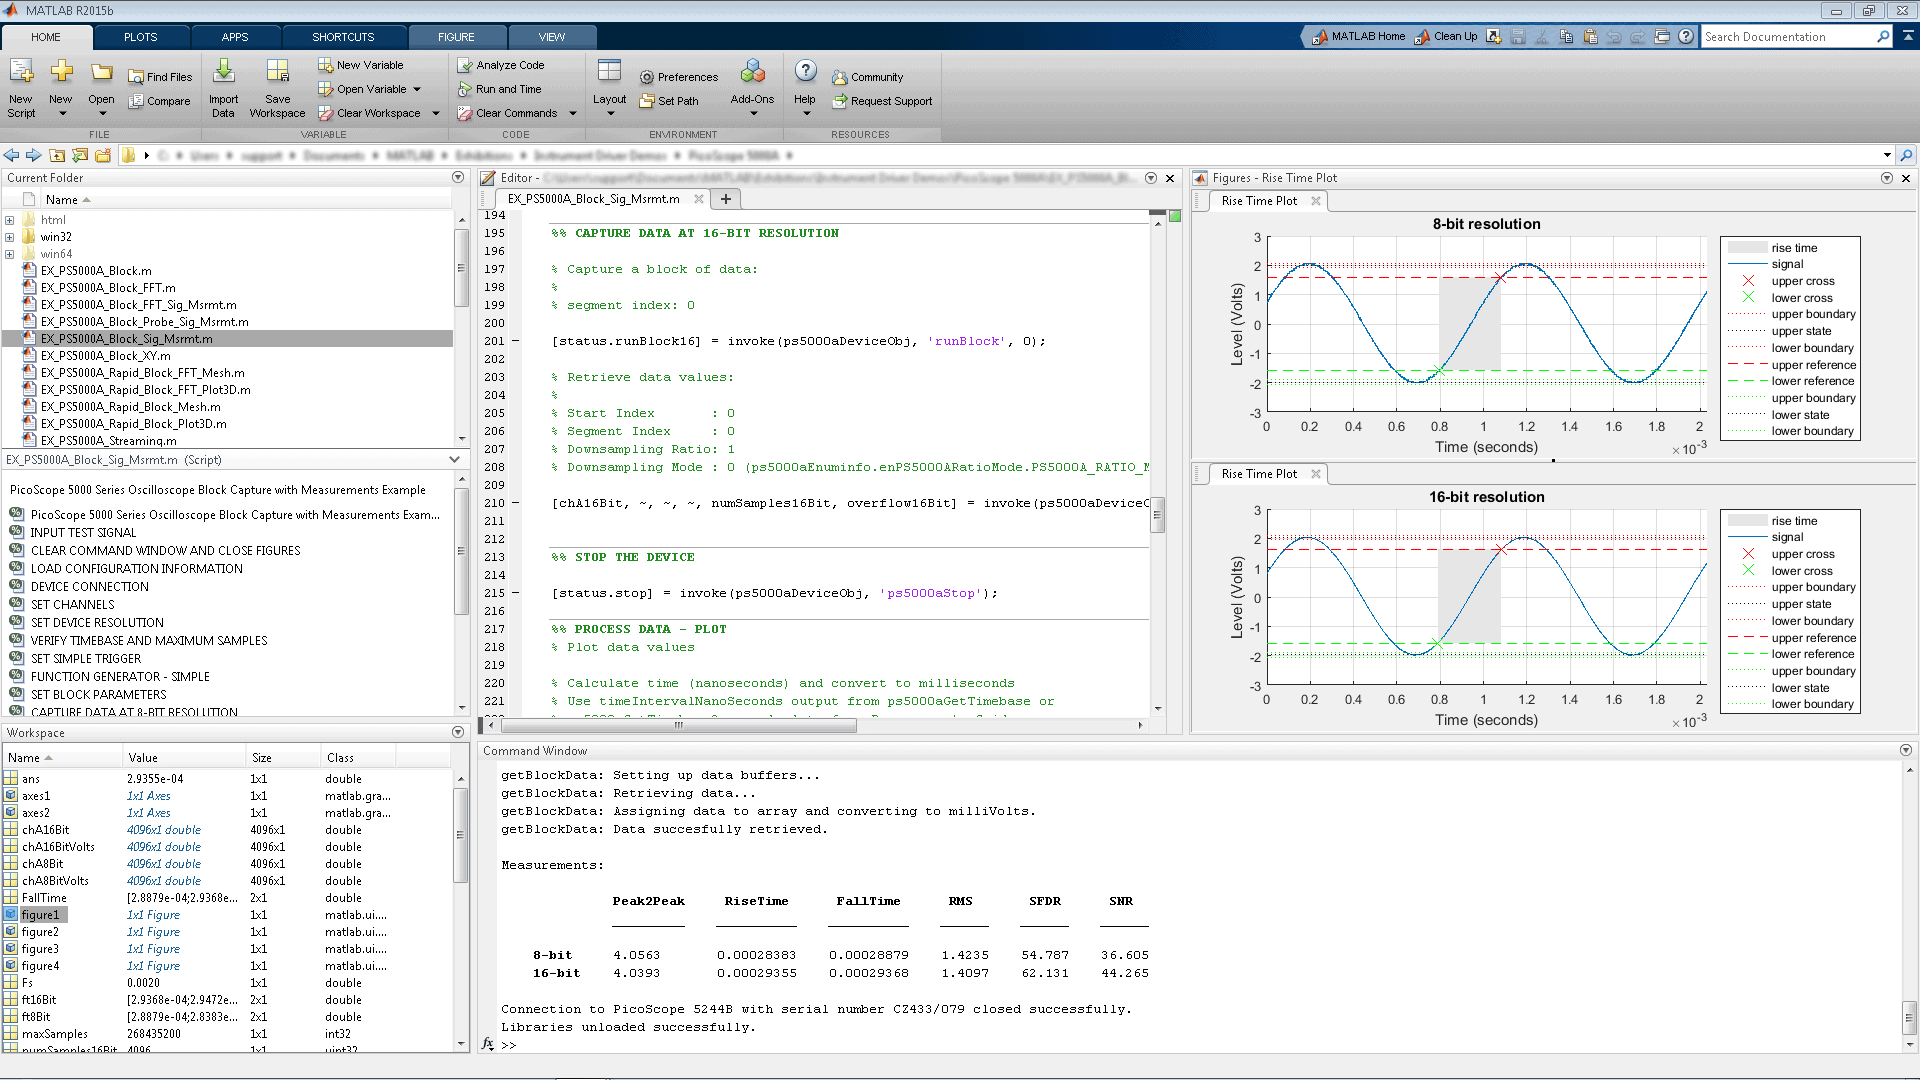 MATLAB Signal Processing Toolbox for analyzing PicoScope data